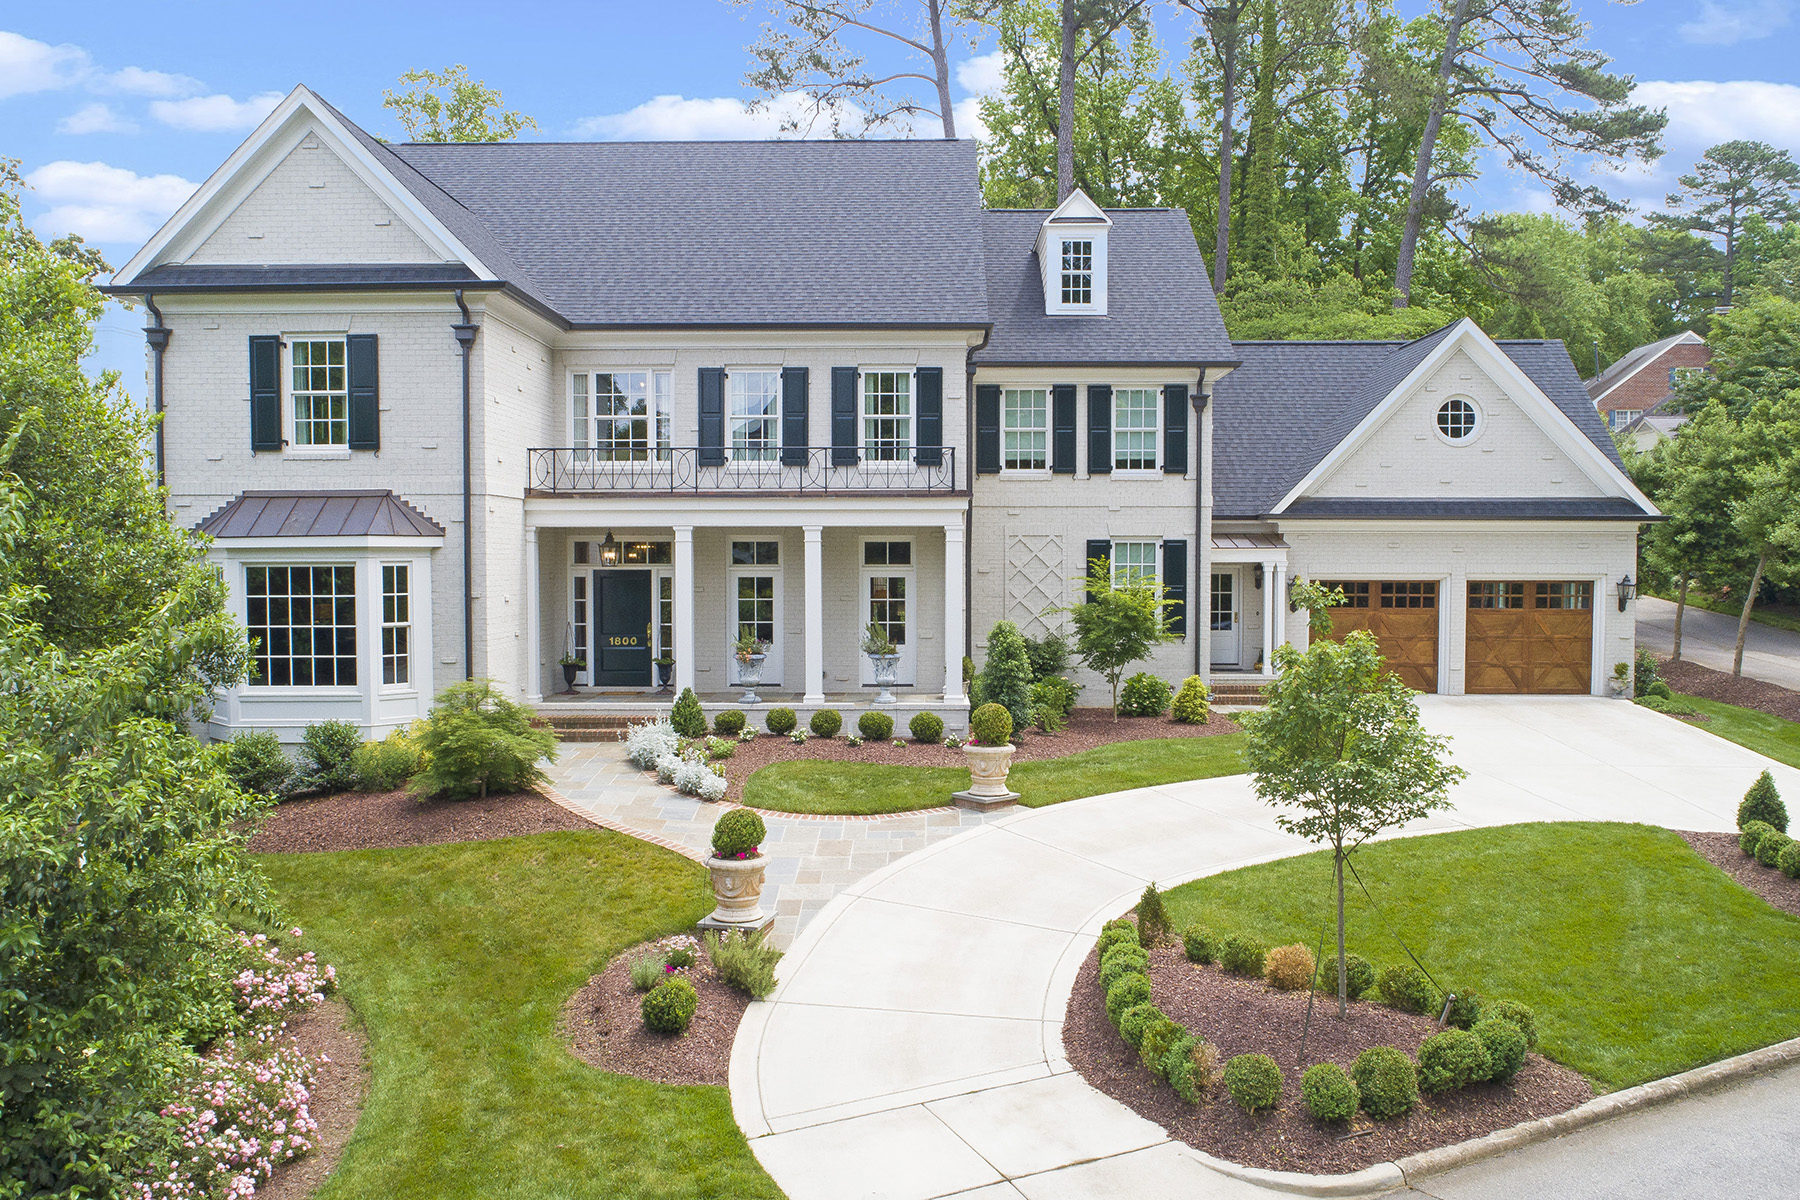 Single Family Homes for Active at 1800 Chester Road Raleigh NC 27608 1800 Chester Road Raleigh, North Carolina 27608 United States